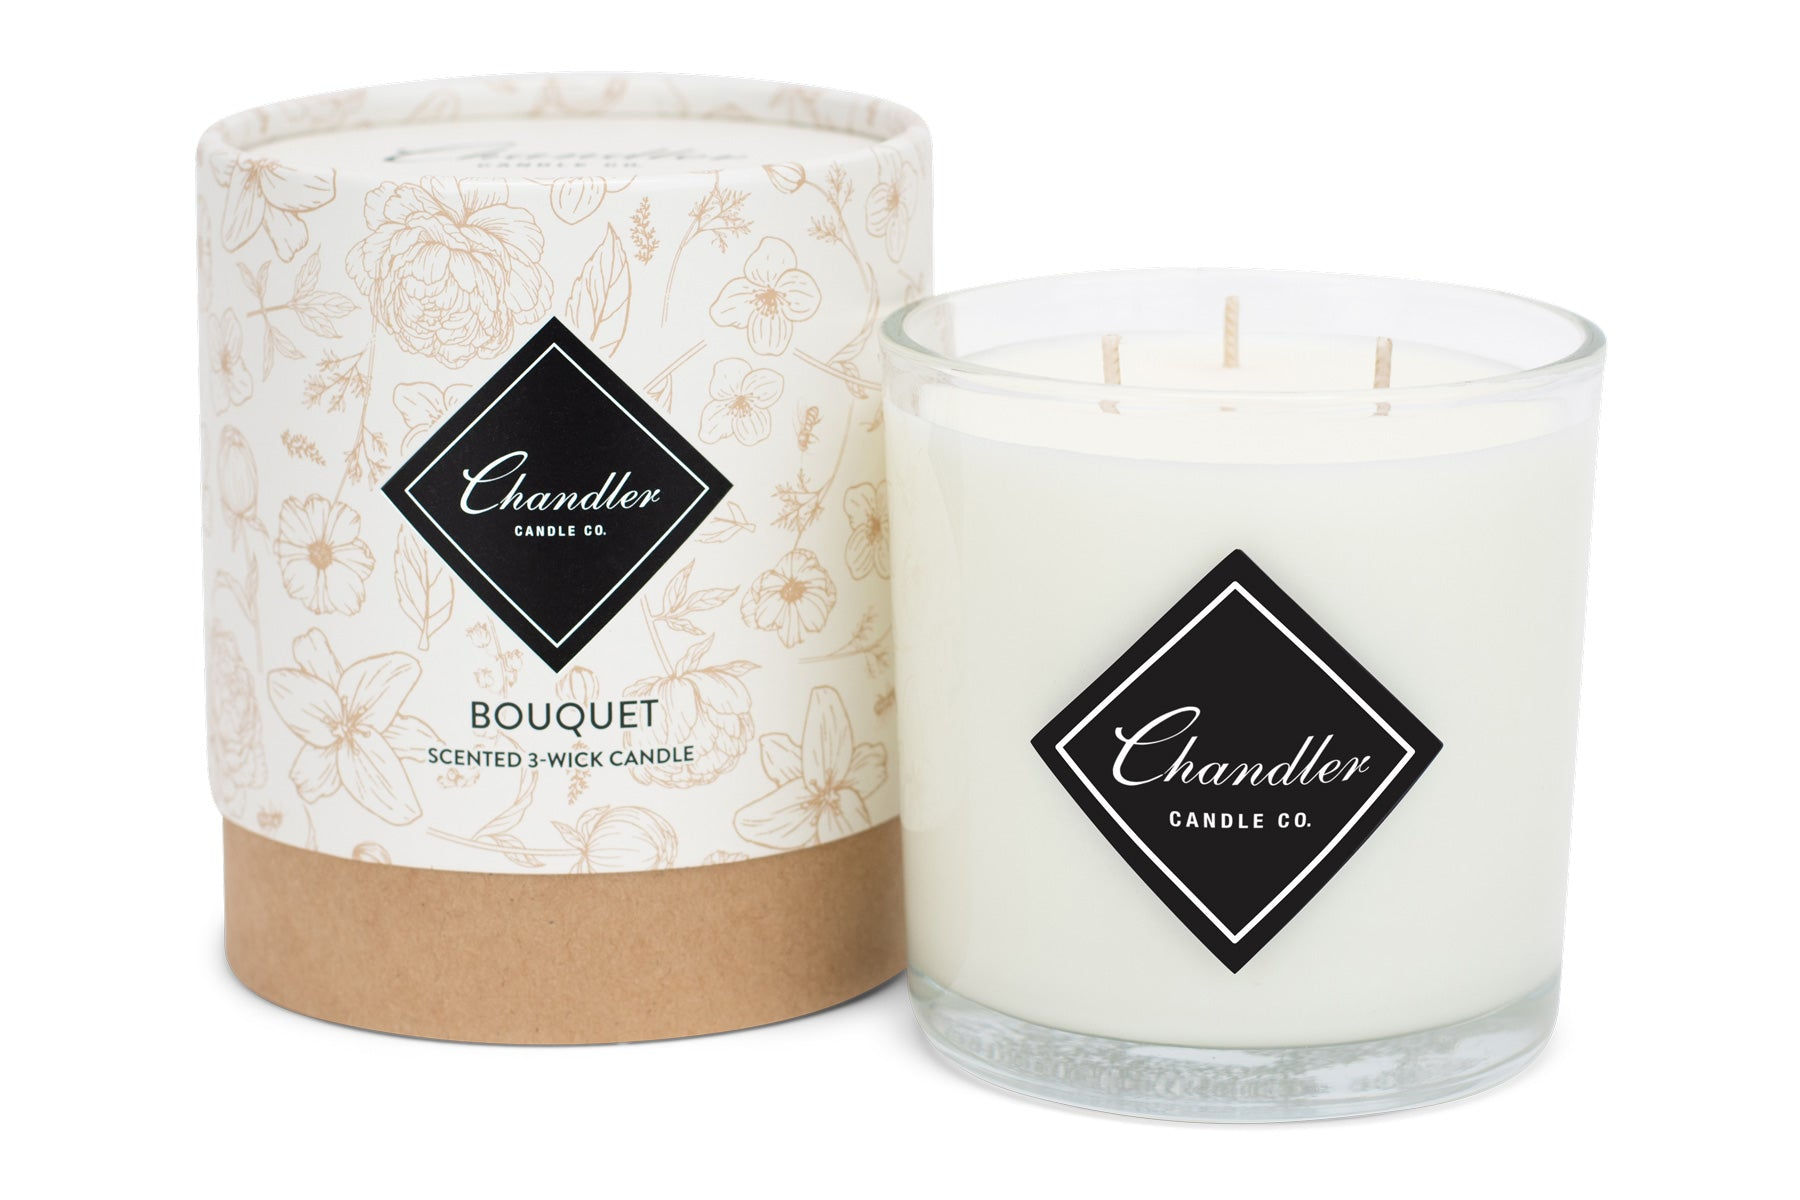 Large 3-Wick Bouquet Scented Candle